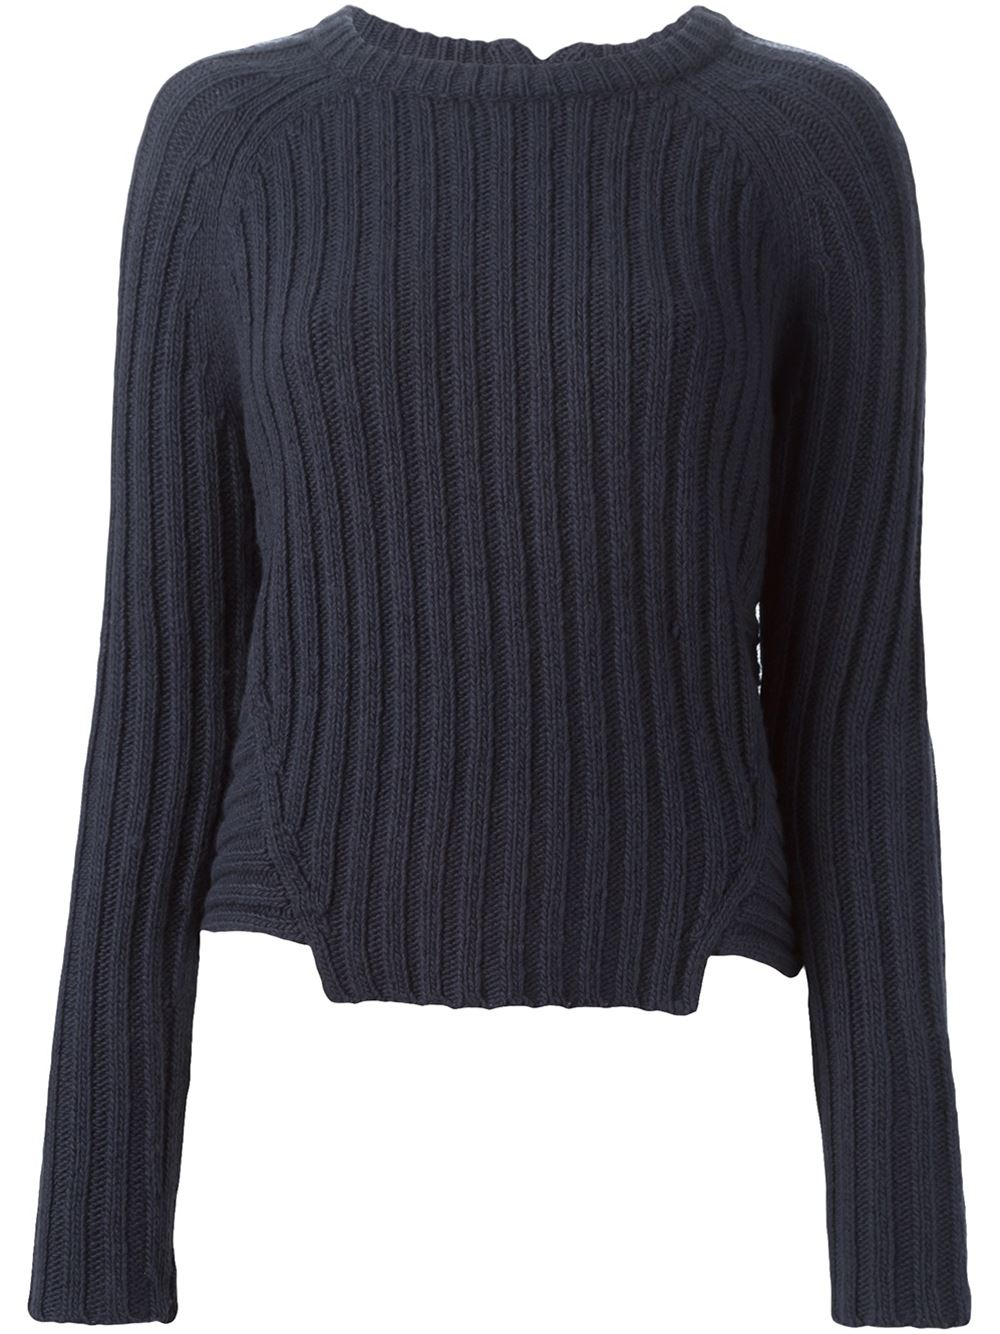 marc by marc jacobs ribbed crew neck sweater in blue lyst. Black Bedroom Furniture Sets. Home Design Ideas